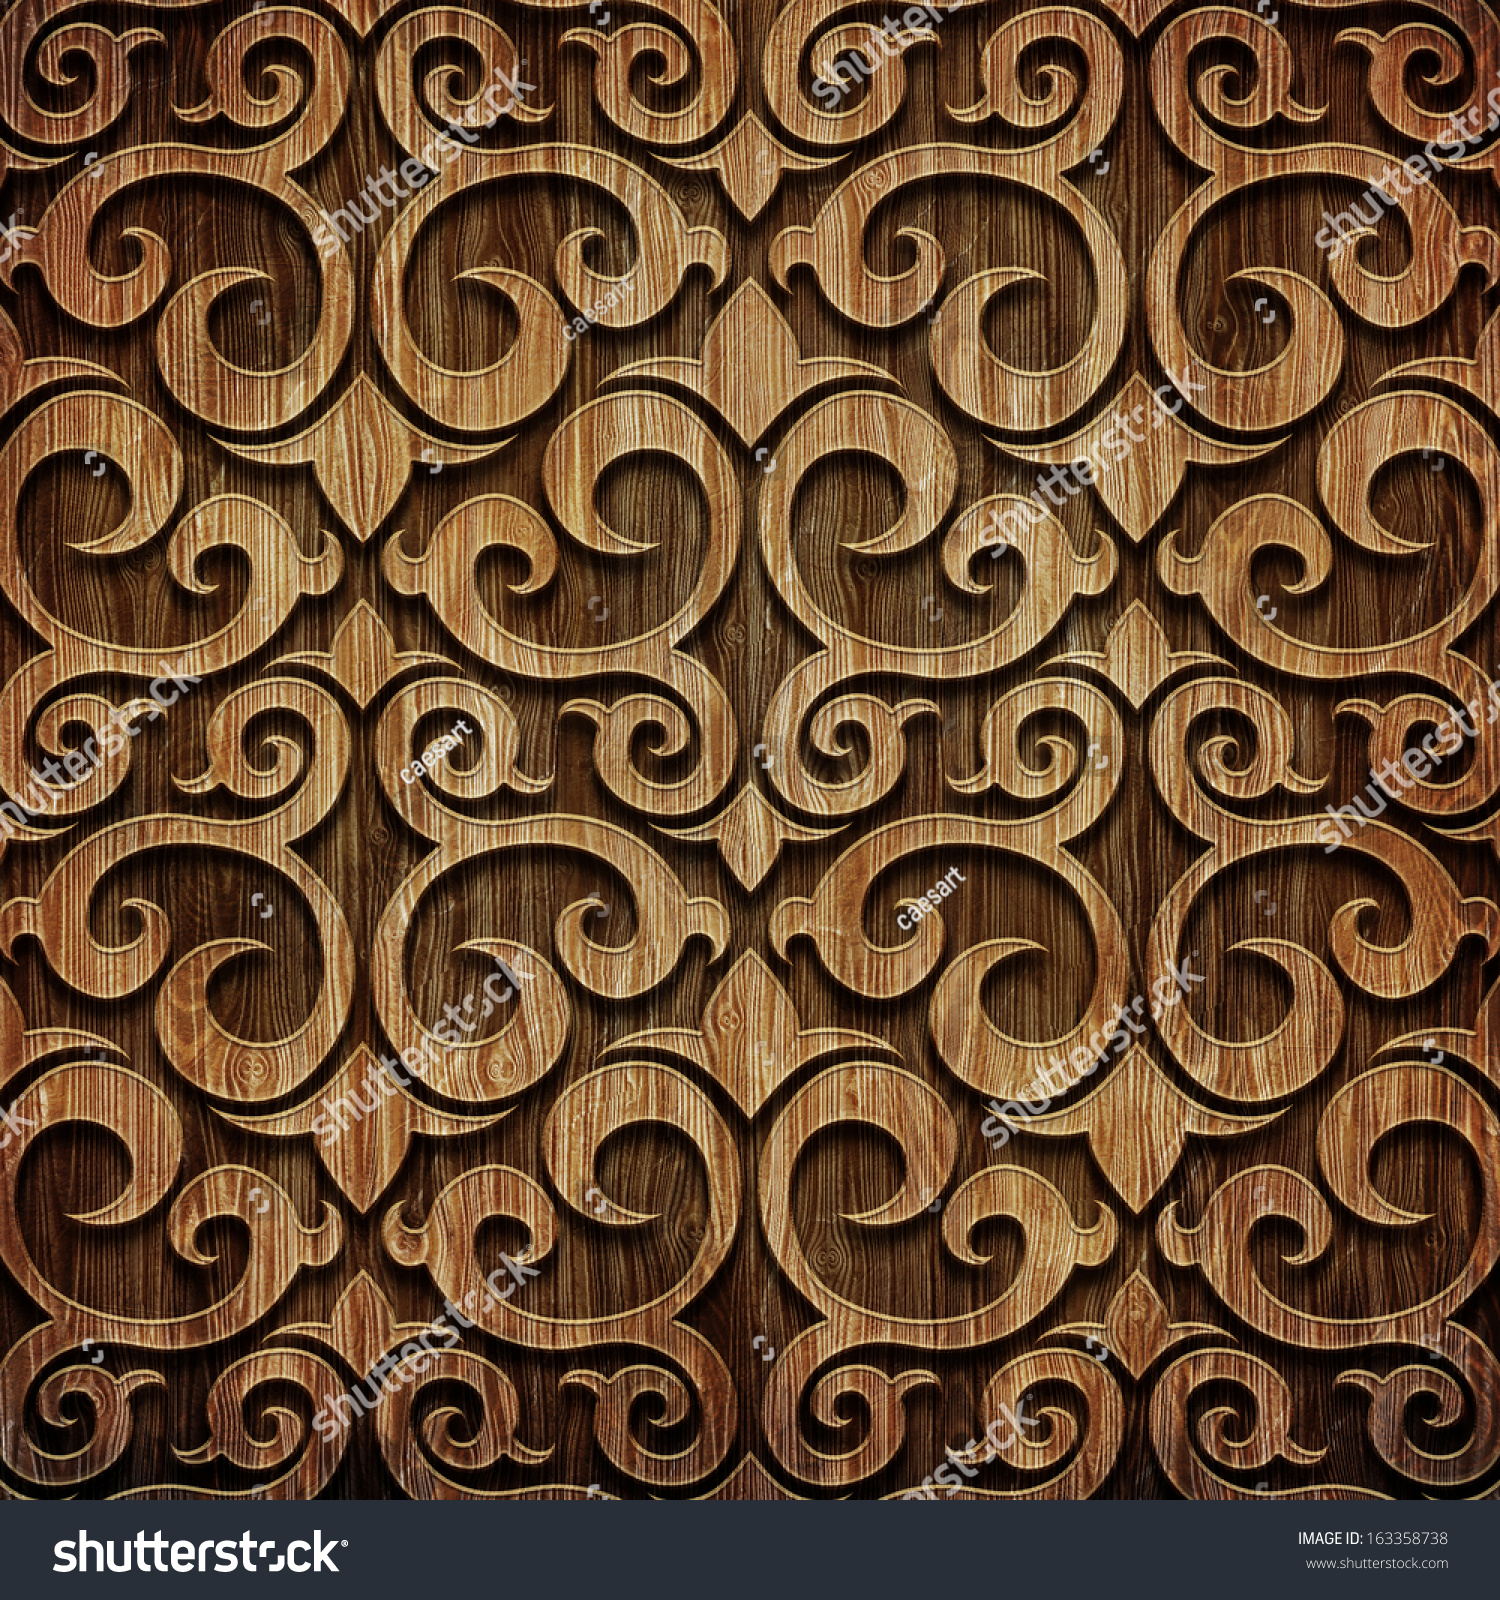 Wood Carving Designs Free Download | www.imgkid.com - The ...